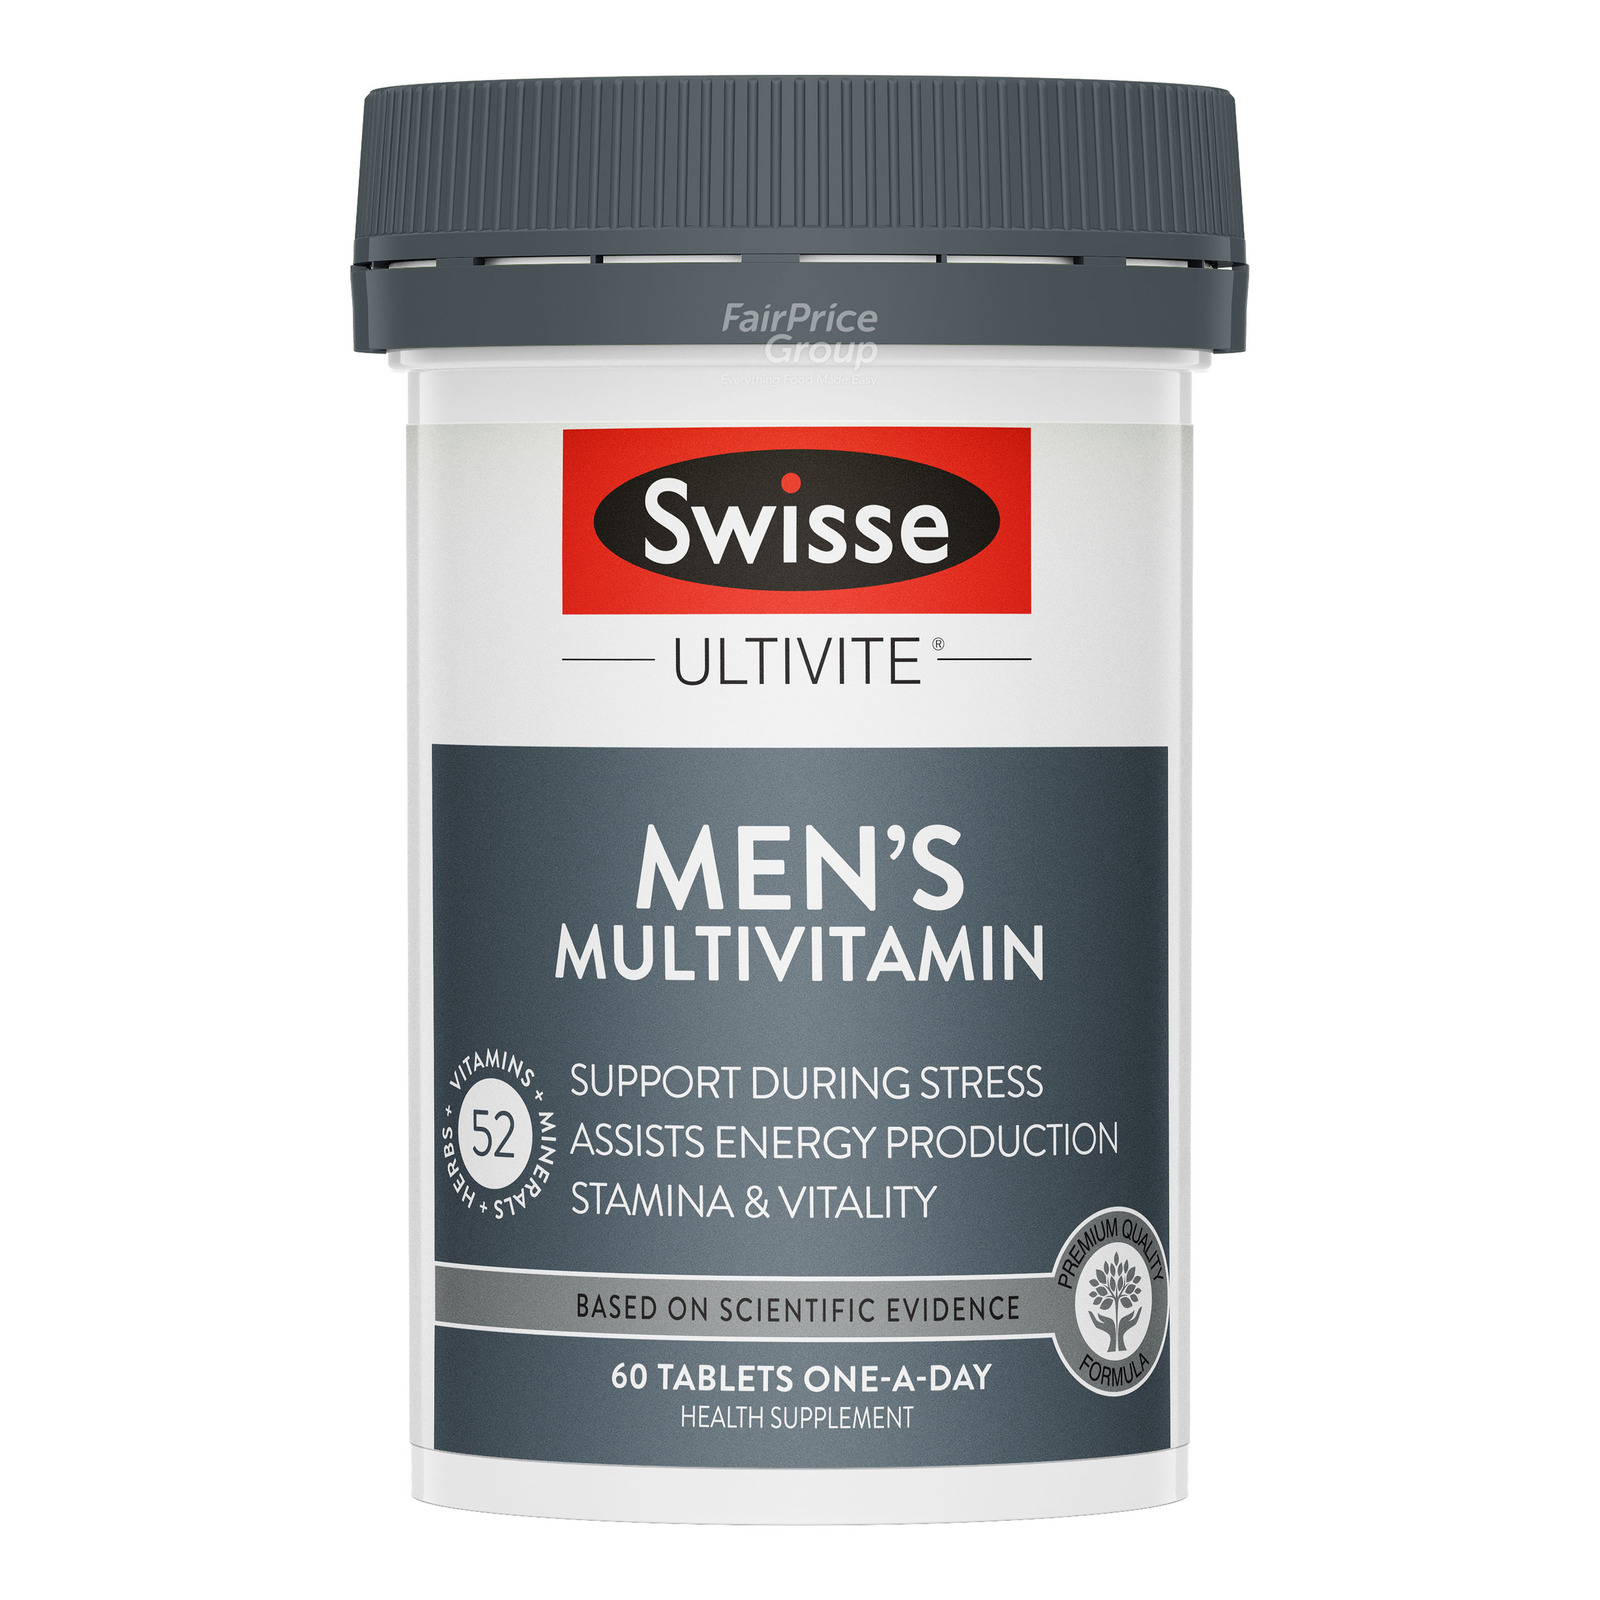 Swisse Multivitamin Supplement - Men's Ultivite